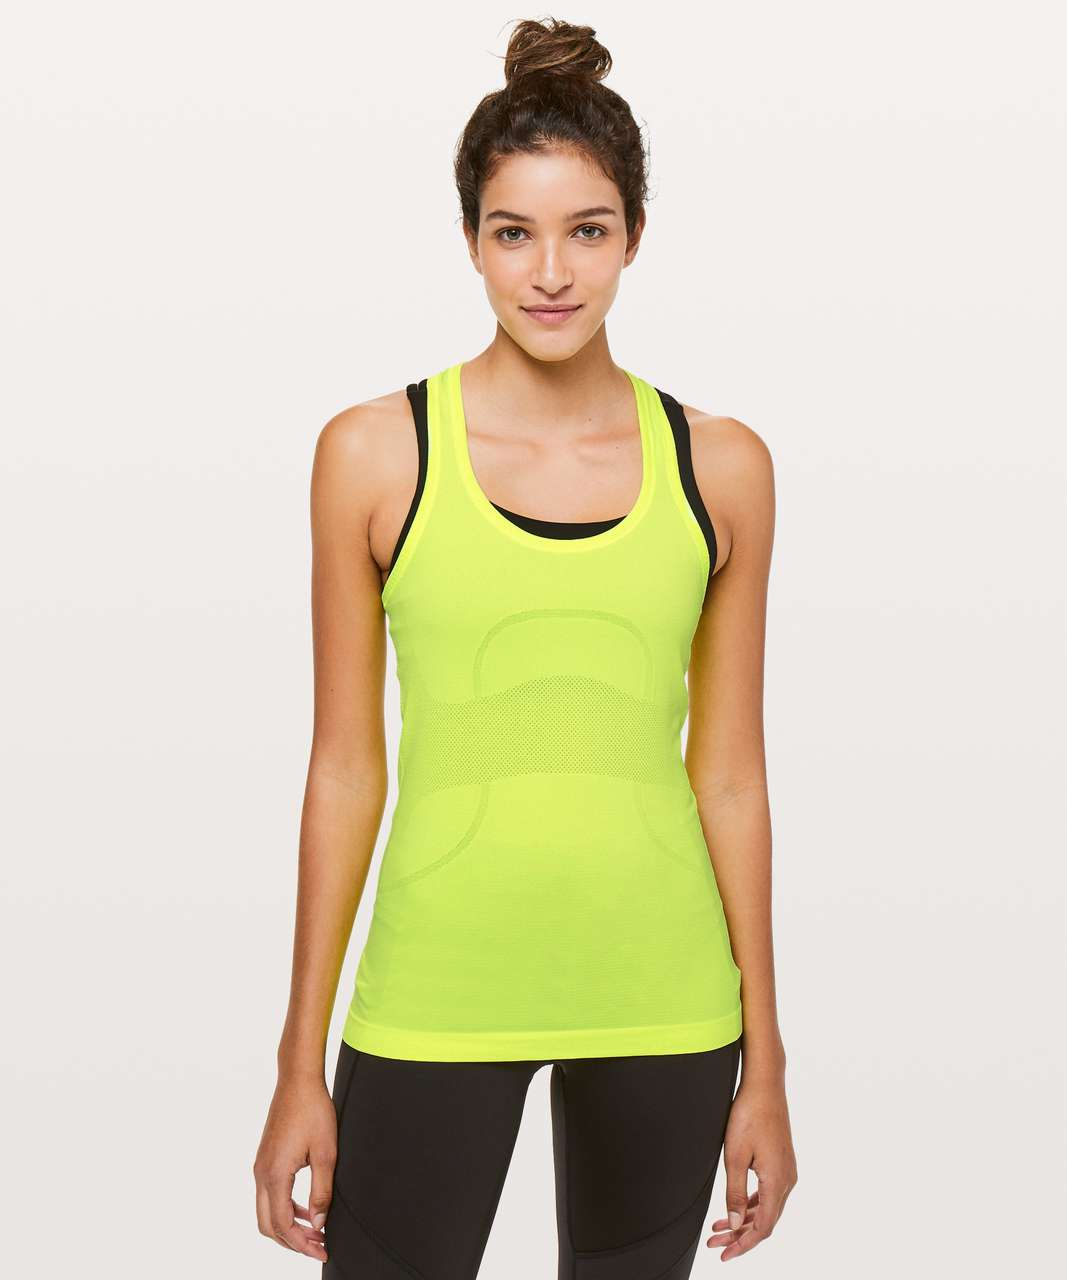 Lululemon Swiftly Tech Racerback - Ray / Ray